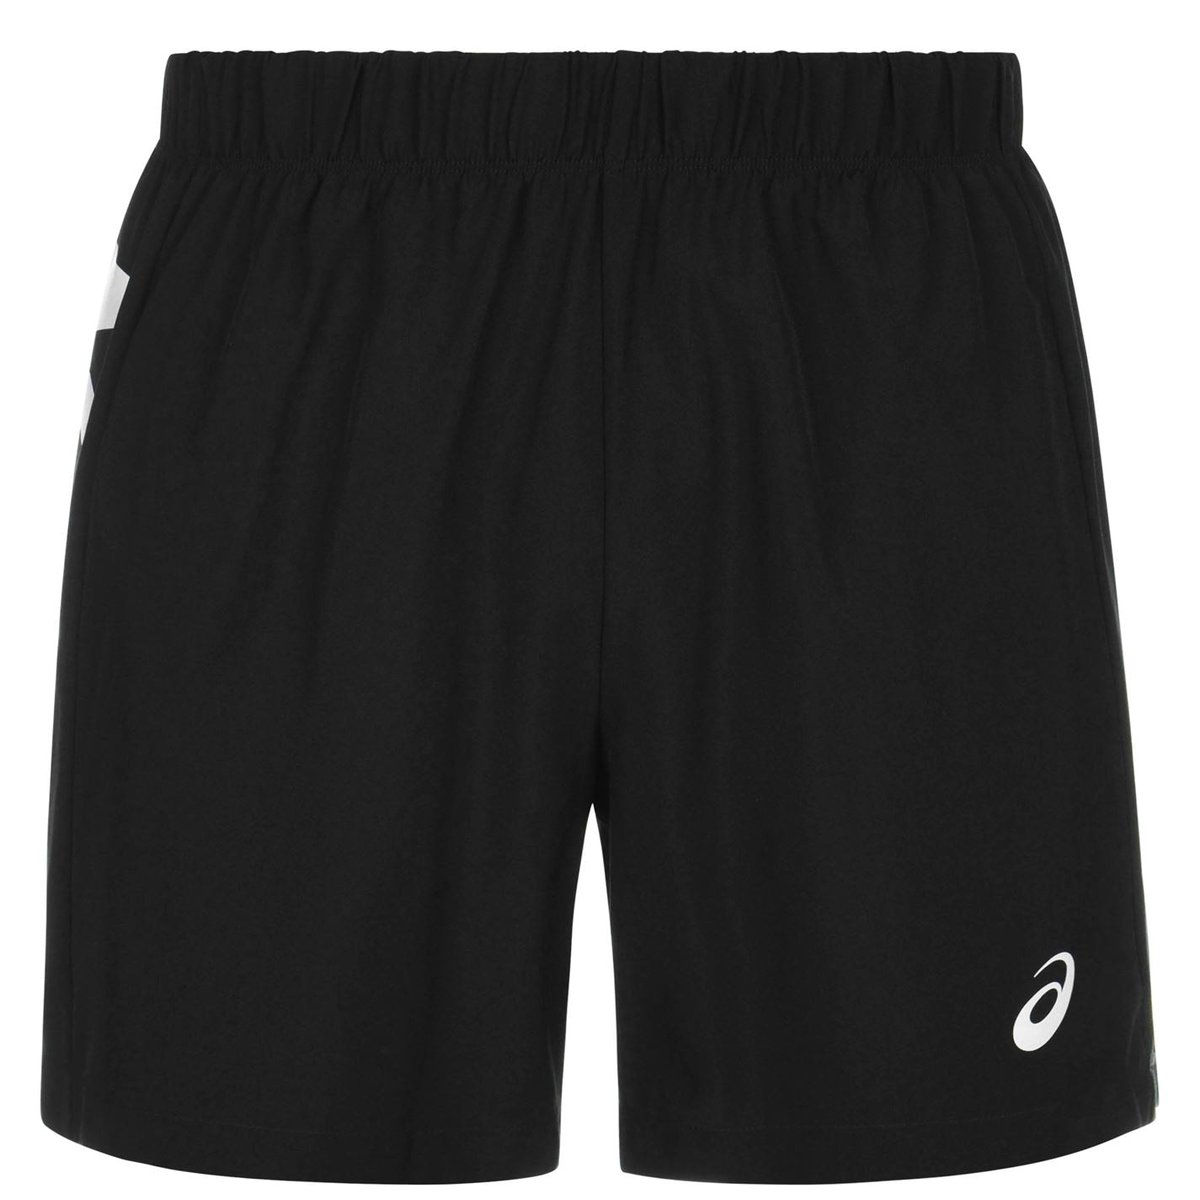 Katakana Shorts Mens